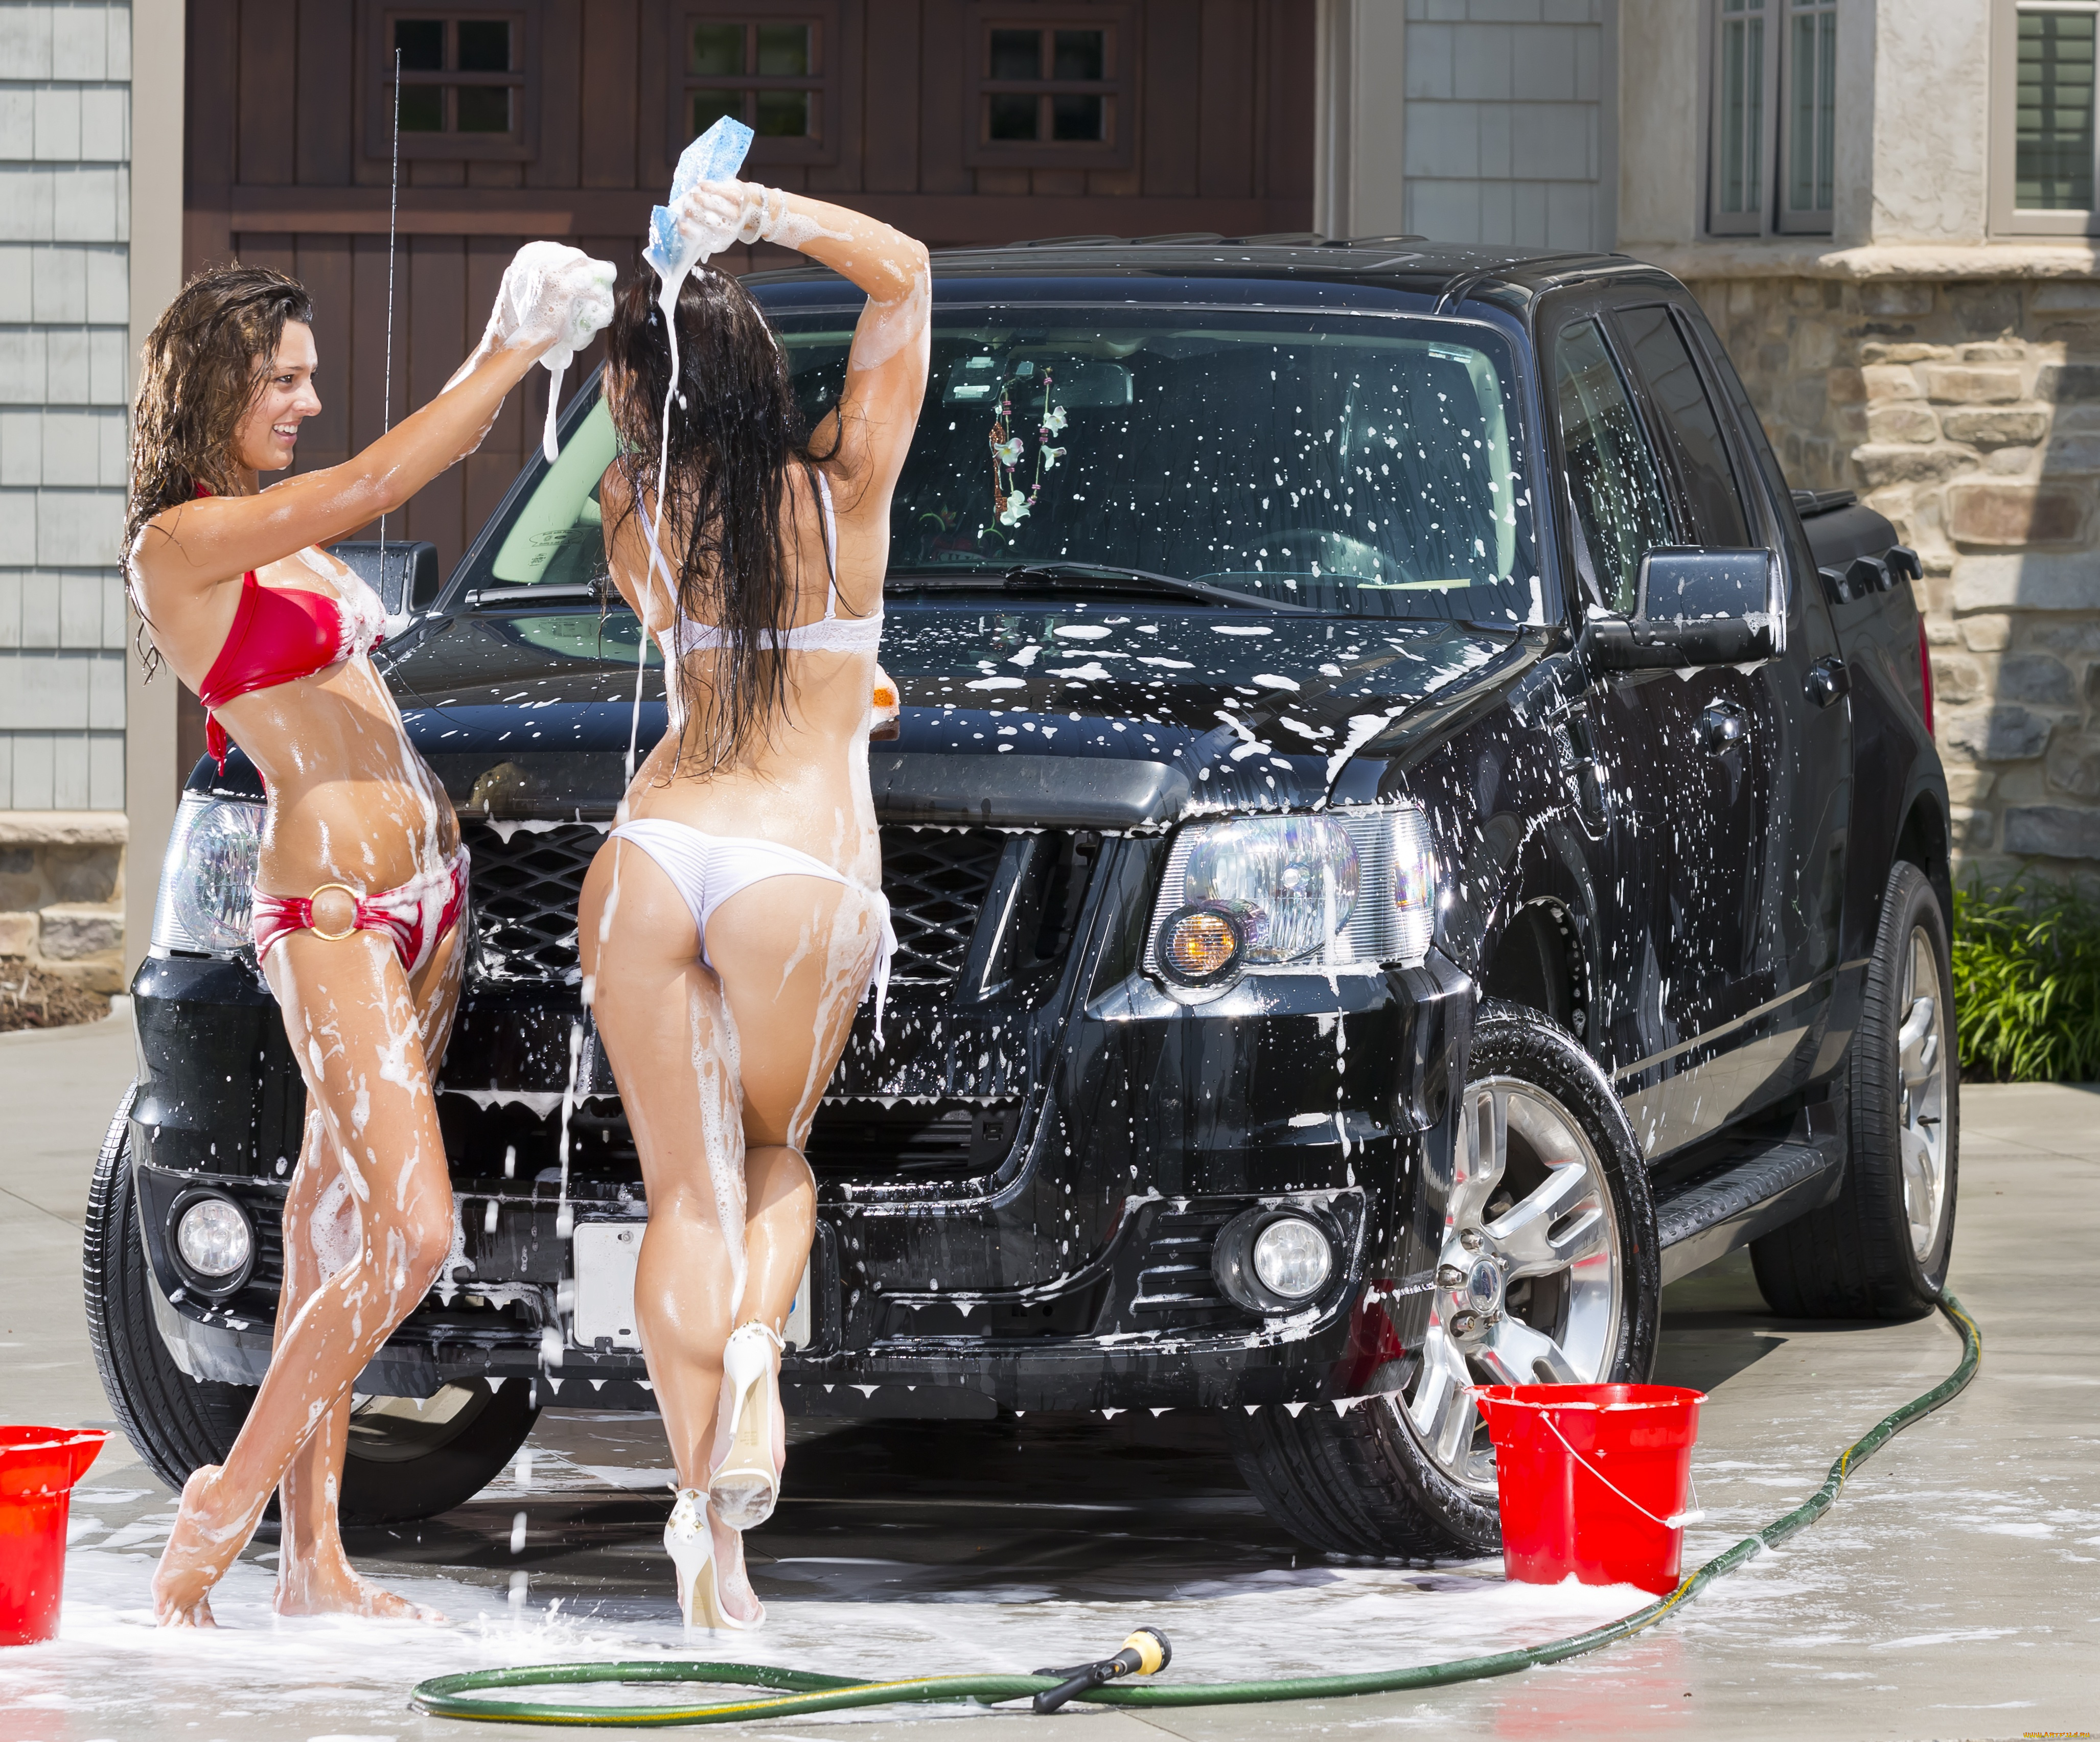 Car Wash Girl Wallpapers High Quality | Download Free